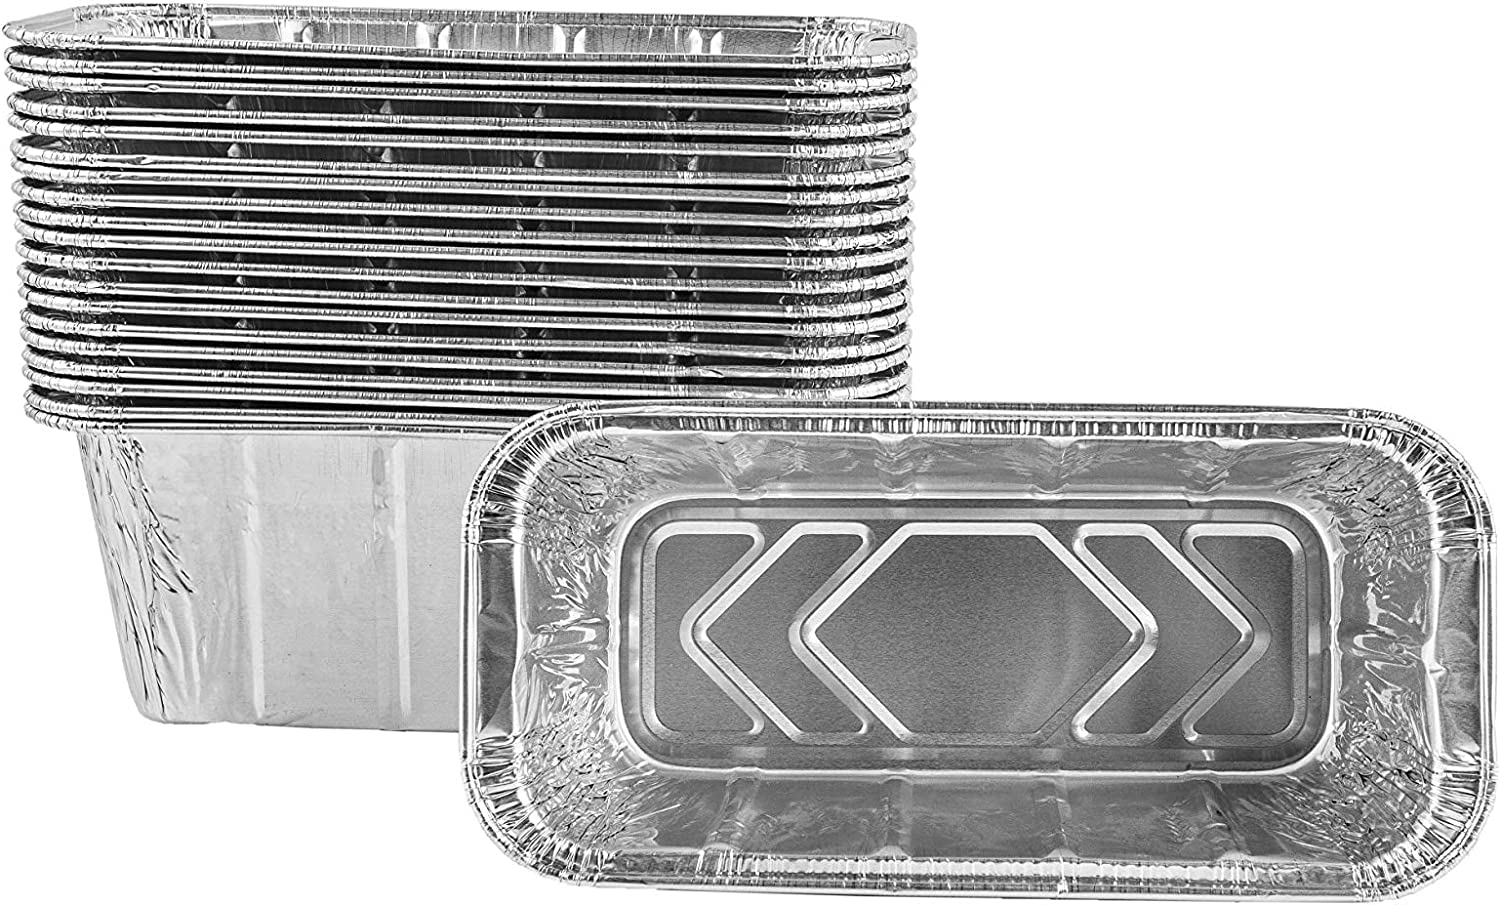 LS'BABQ 25 Pack Aluminum Grill Drip Pans Grease Cup Liners Compatible with Blackstone Grill Accessories 28 and 36 Inch BBQ Griddle and Other Rear Grease Griddle Units,Grill Grease Tray